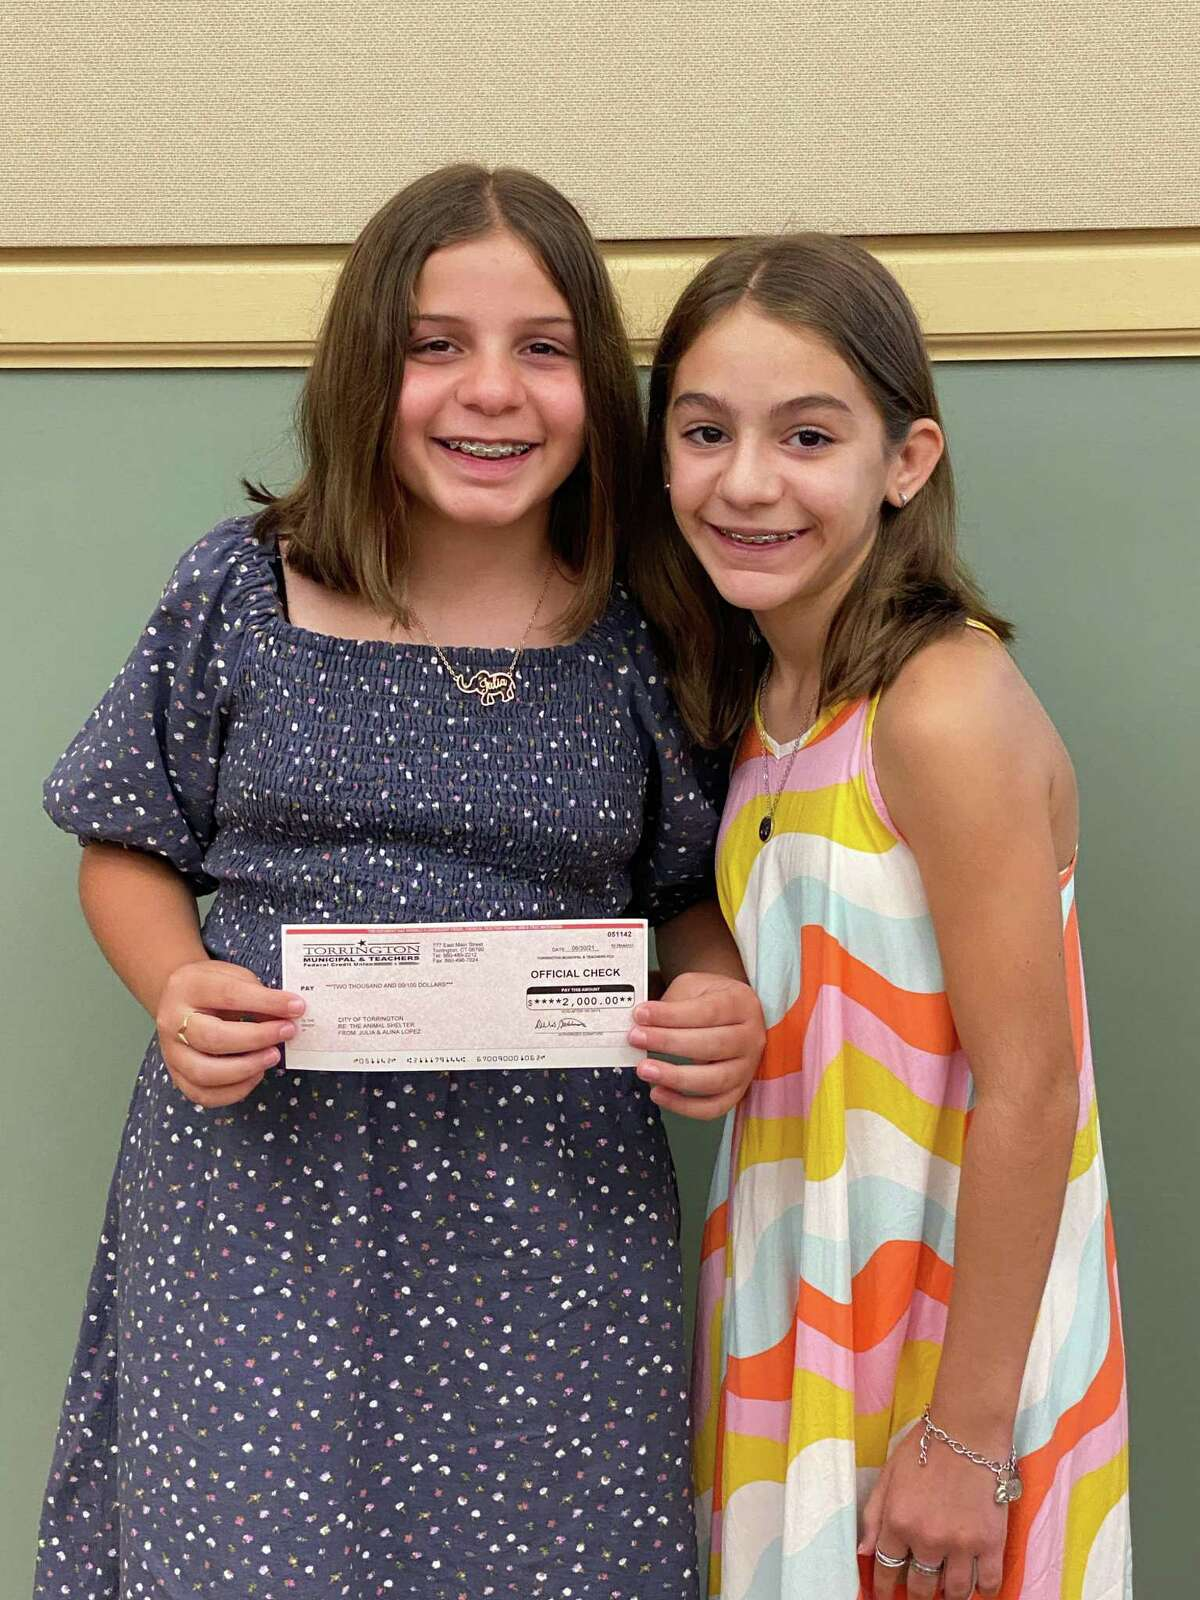 Julia Lopez, 11, left, and her sister Alina, 13, made a donation of $2,000 to the city's animal shelter project July 7 during the Board of Public Safety meeting. Julia raised the money by selling baked goods, tabouli and hummus, and, later, the sisters baked dog treats.